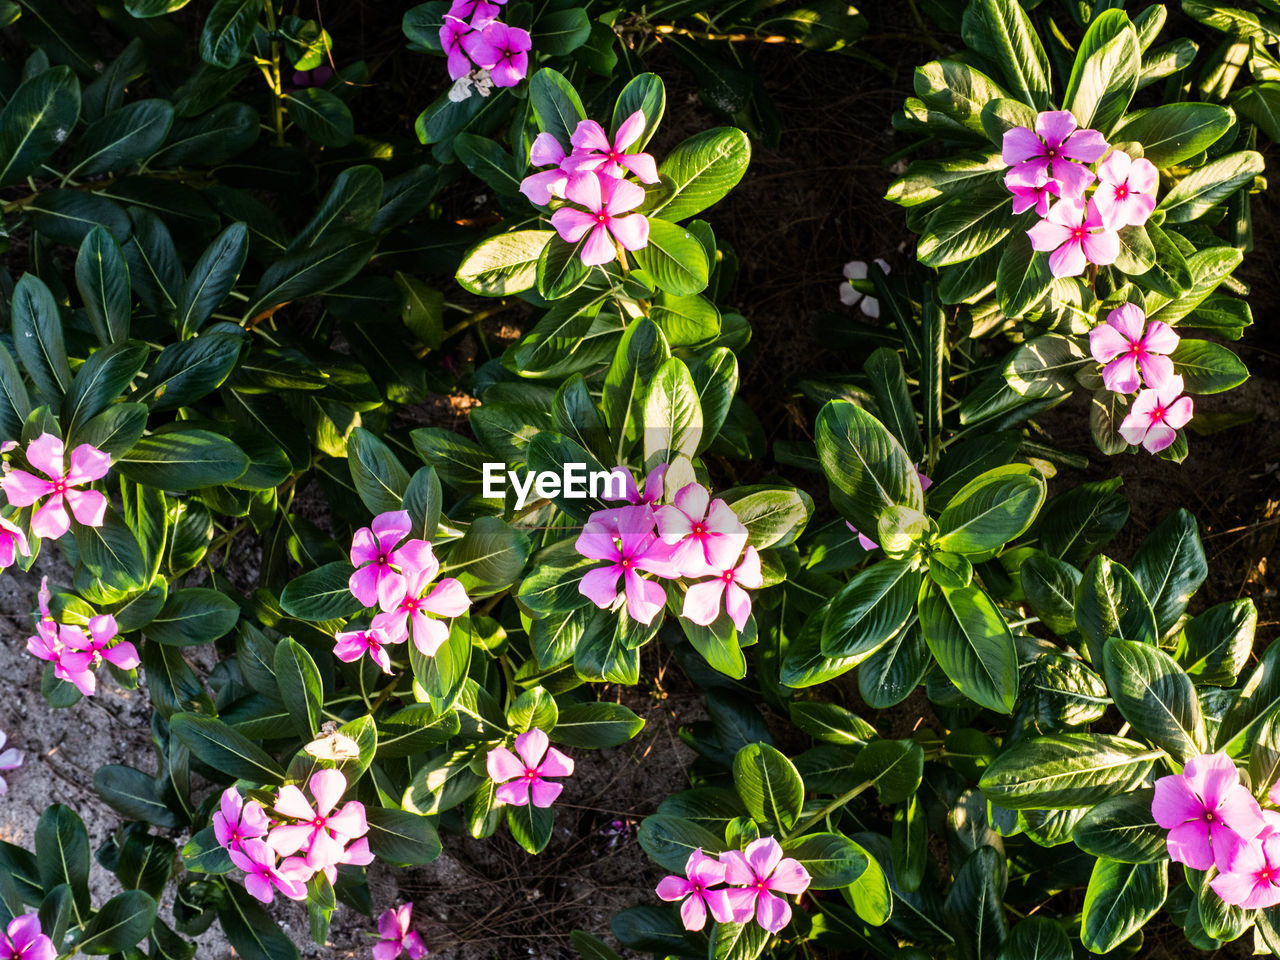 flower, growth, pink color, fragility, petal, freshness, nature, high angle view, plant, beauty in nature, outdoors, blooming, no people, green color, day, flower head, periwinkle, leaf, close-up, petunia